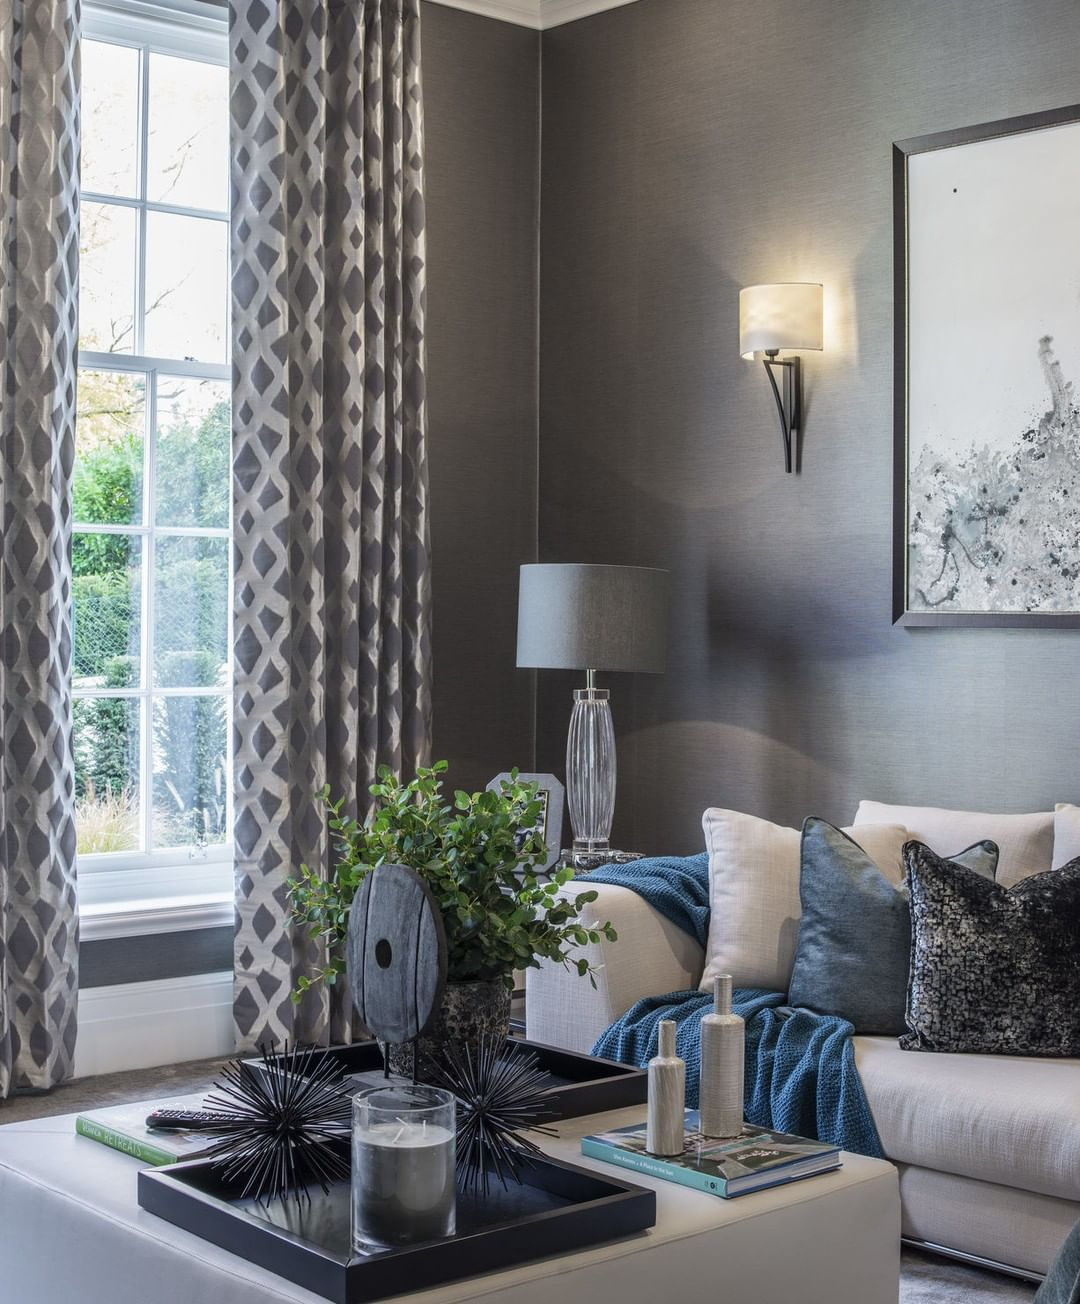 Luxurious Teals Pop Against The Crisp Grey Palette Within Our Snug Room Design The Warm Hues Creating A Comforting Cosy Feel Huse Ideer